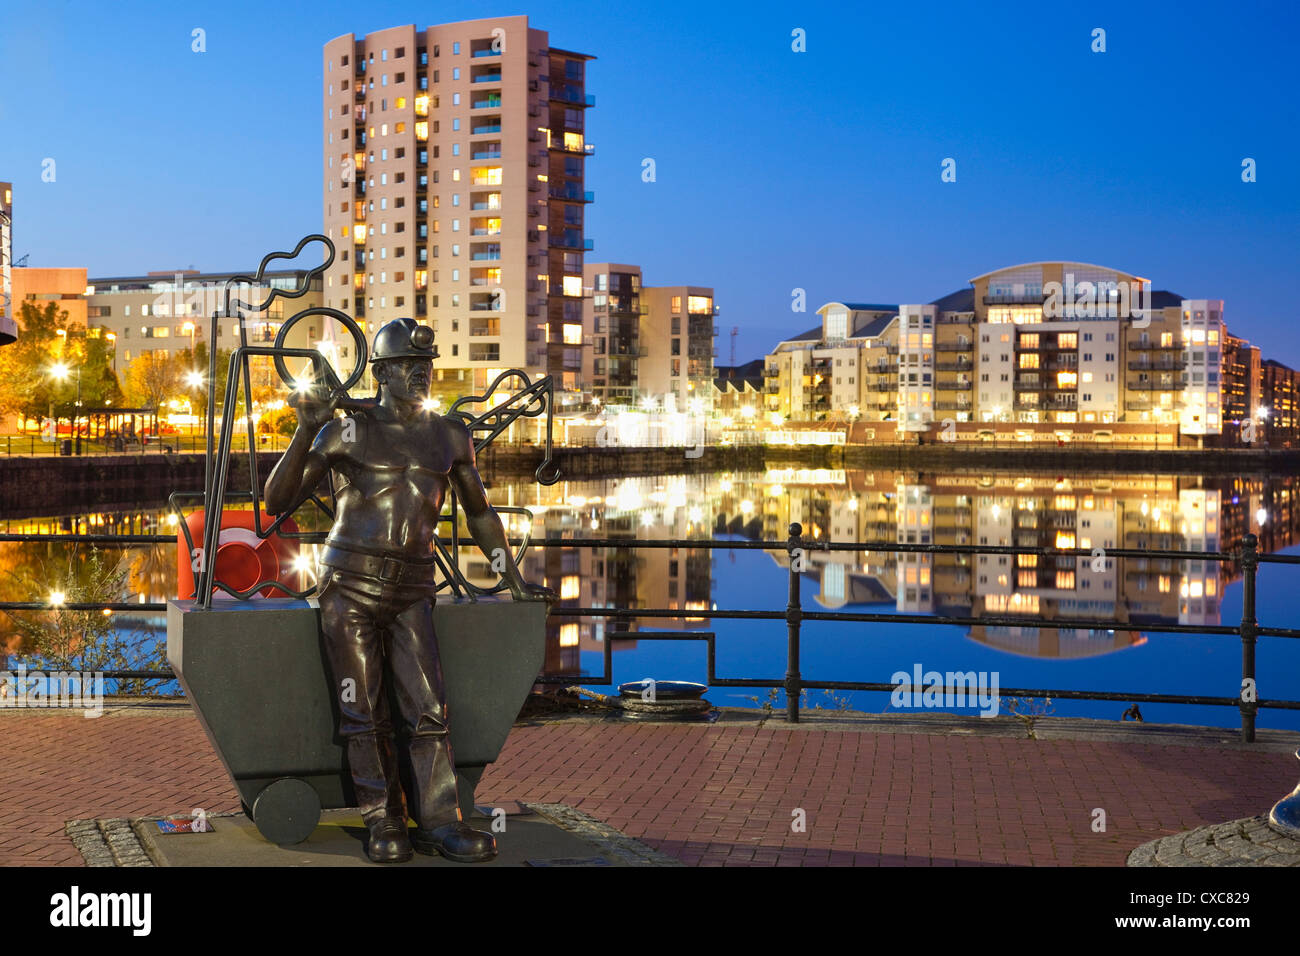 Miner Statue, Cardiff Bay, South Wales, Wales, United Kingdom, Europe - Stock Image